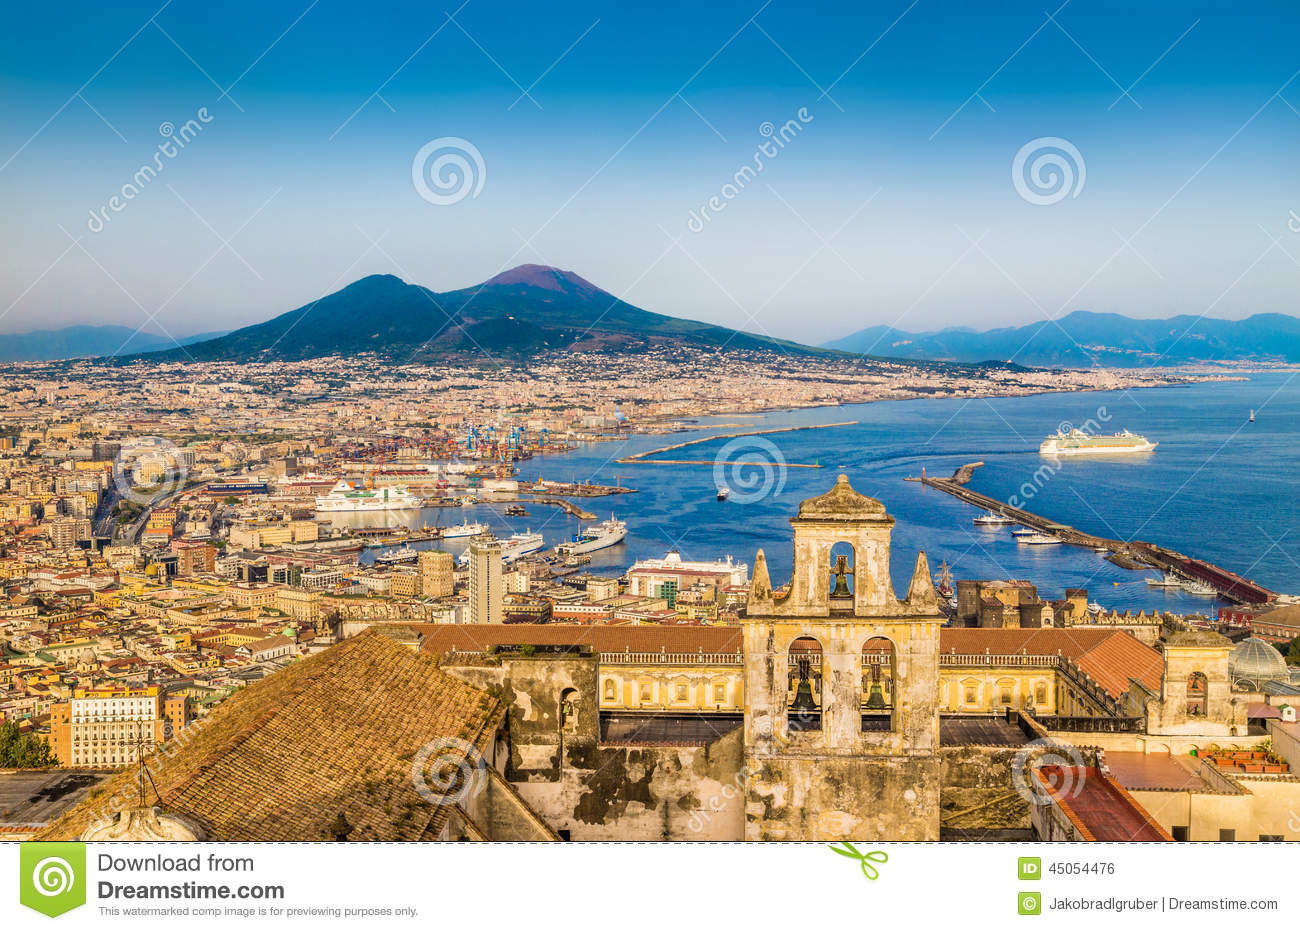 Aerial view of Naples with Mount Vesuvius at sunset, Campania, Italy